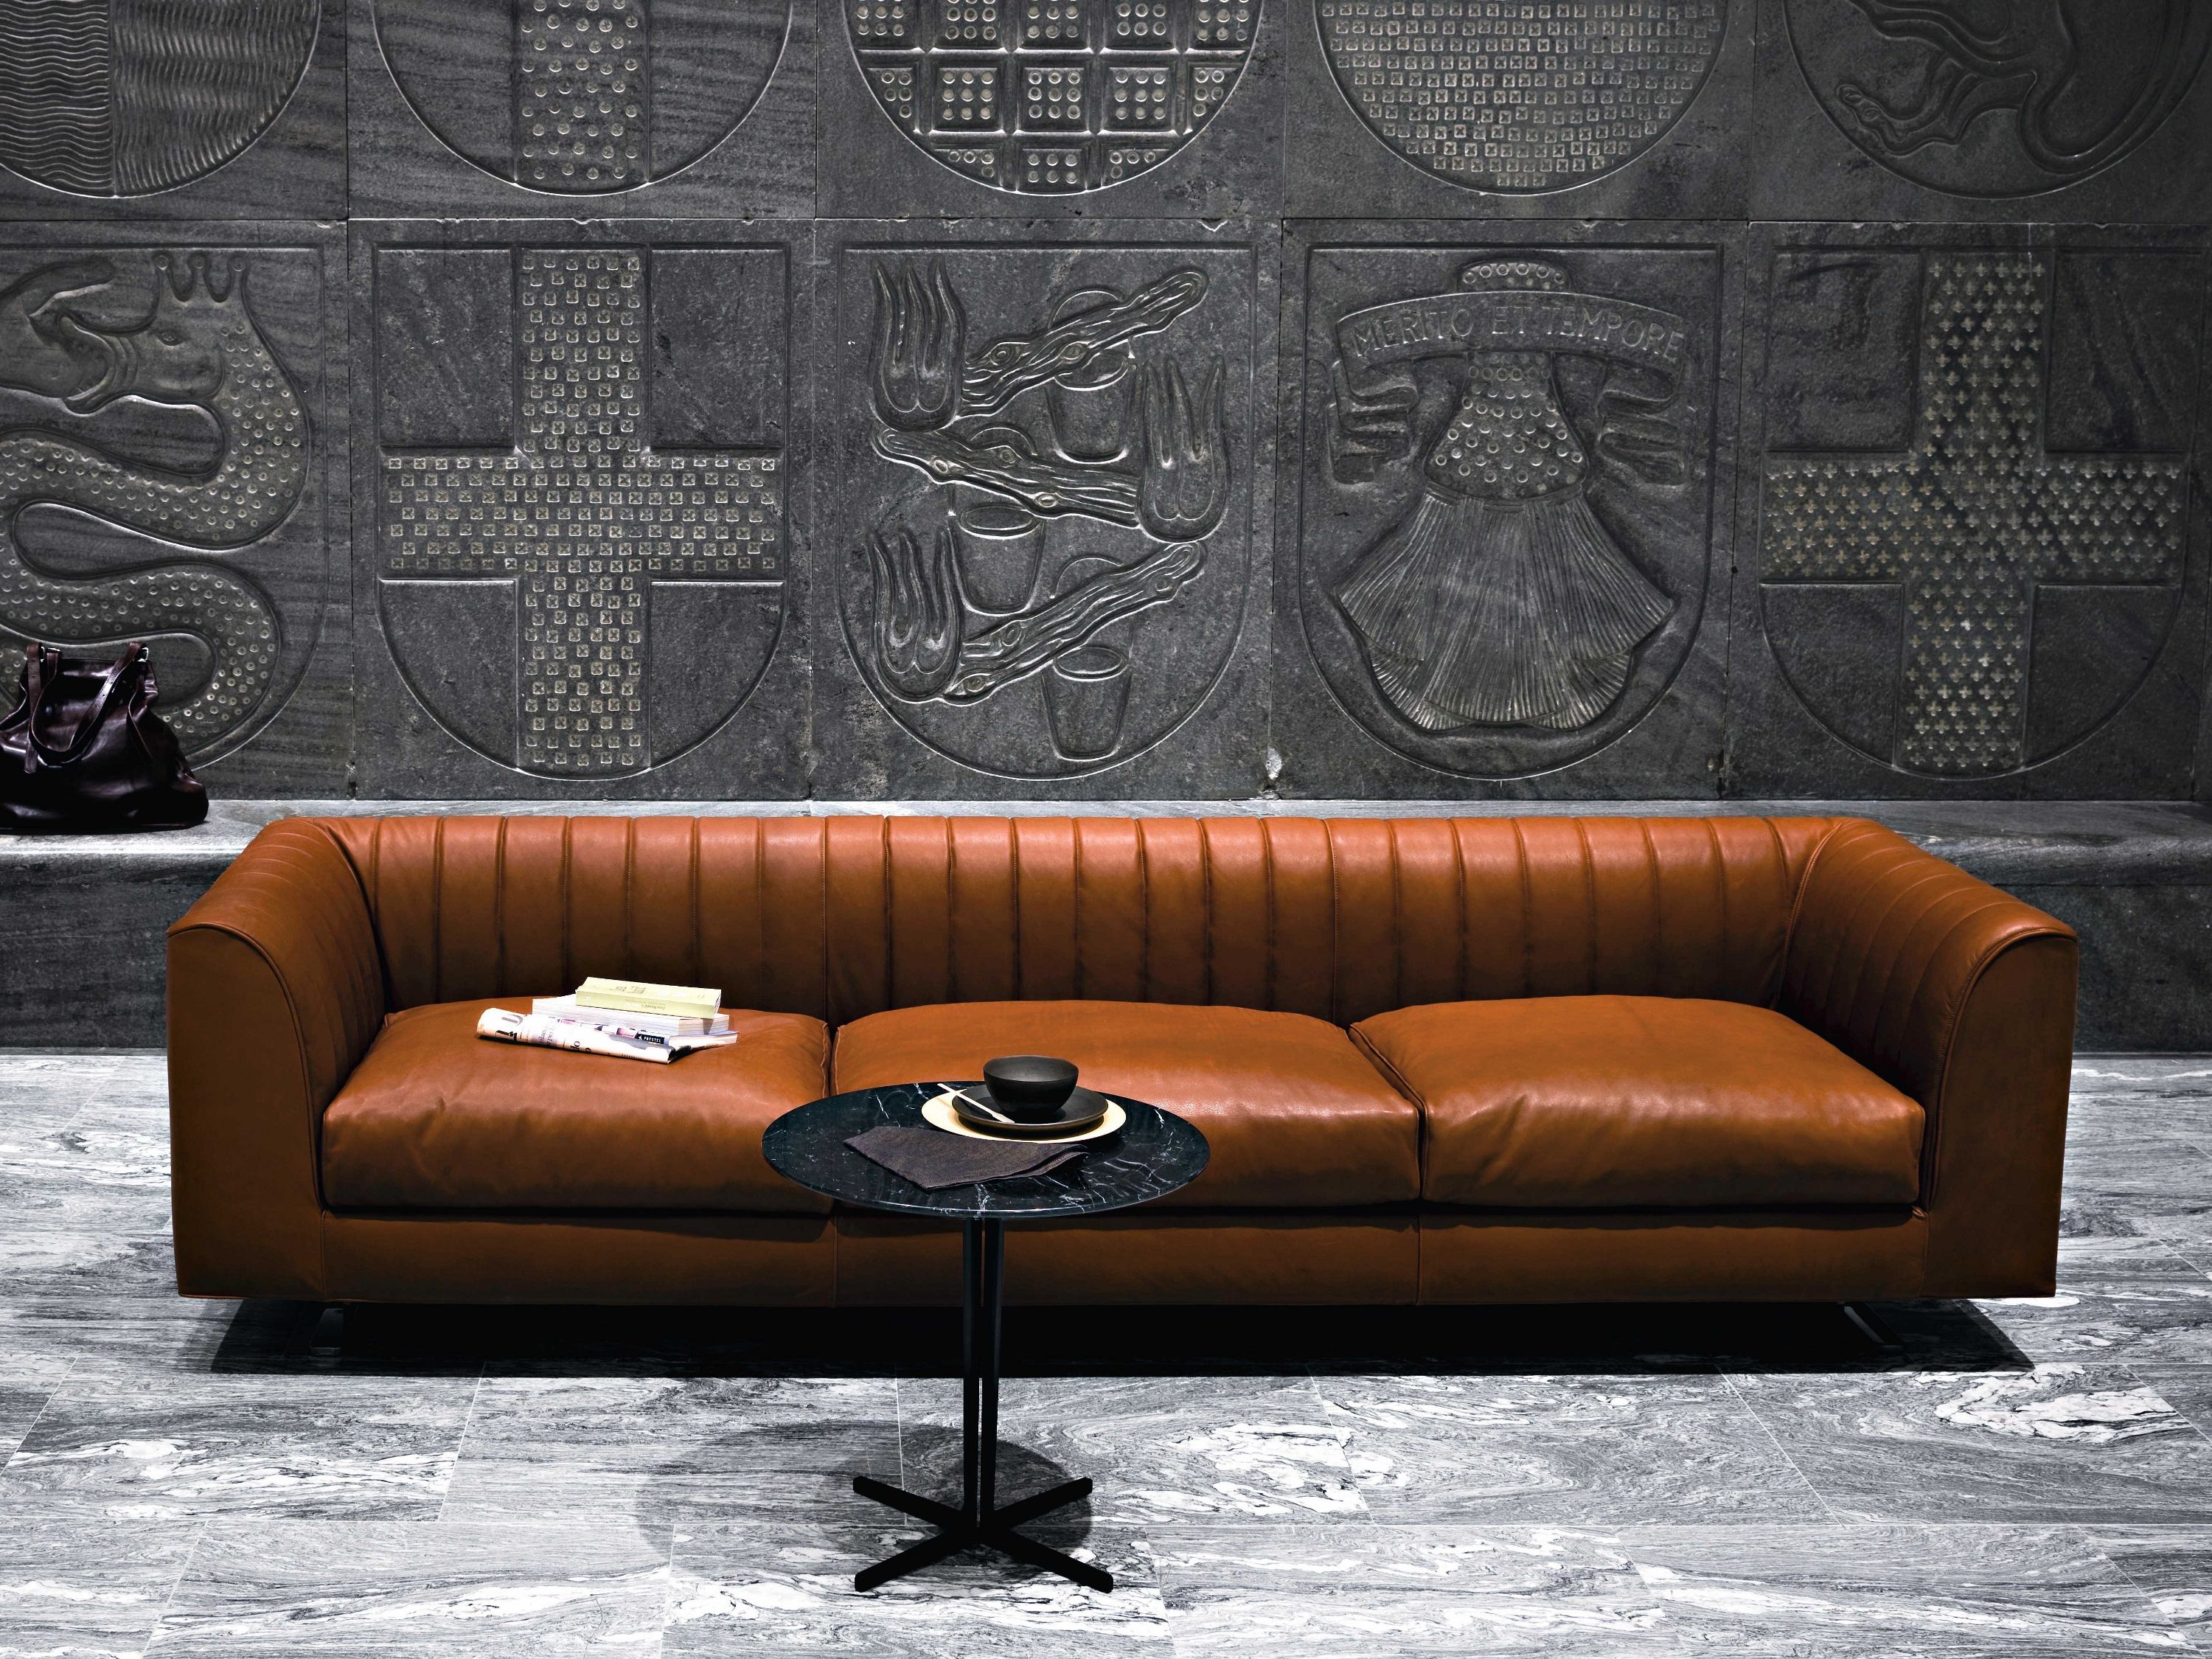 QUILT | Sofa aus Leder | Leather sofas and Interiors